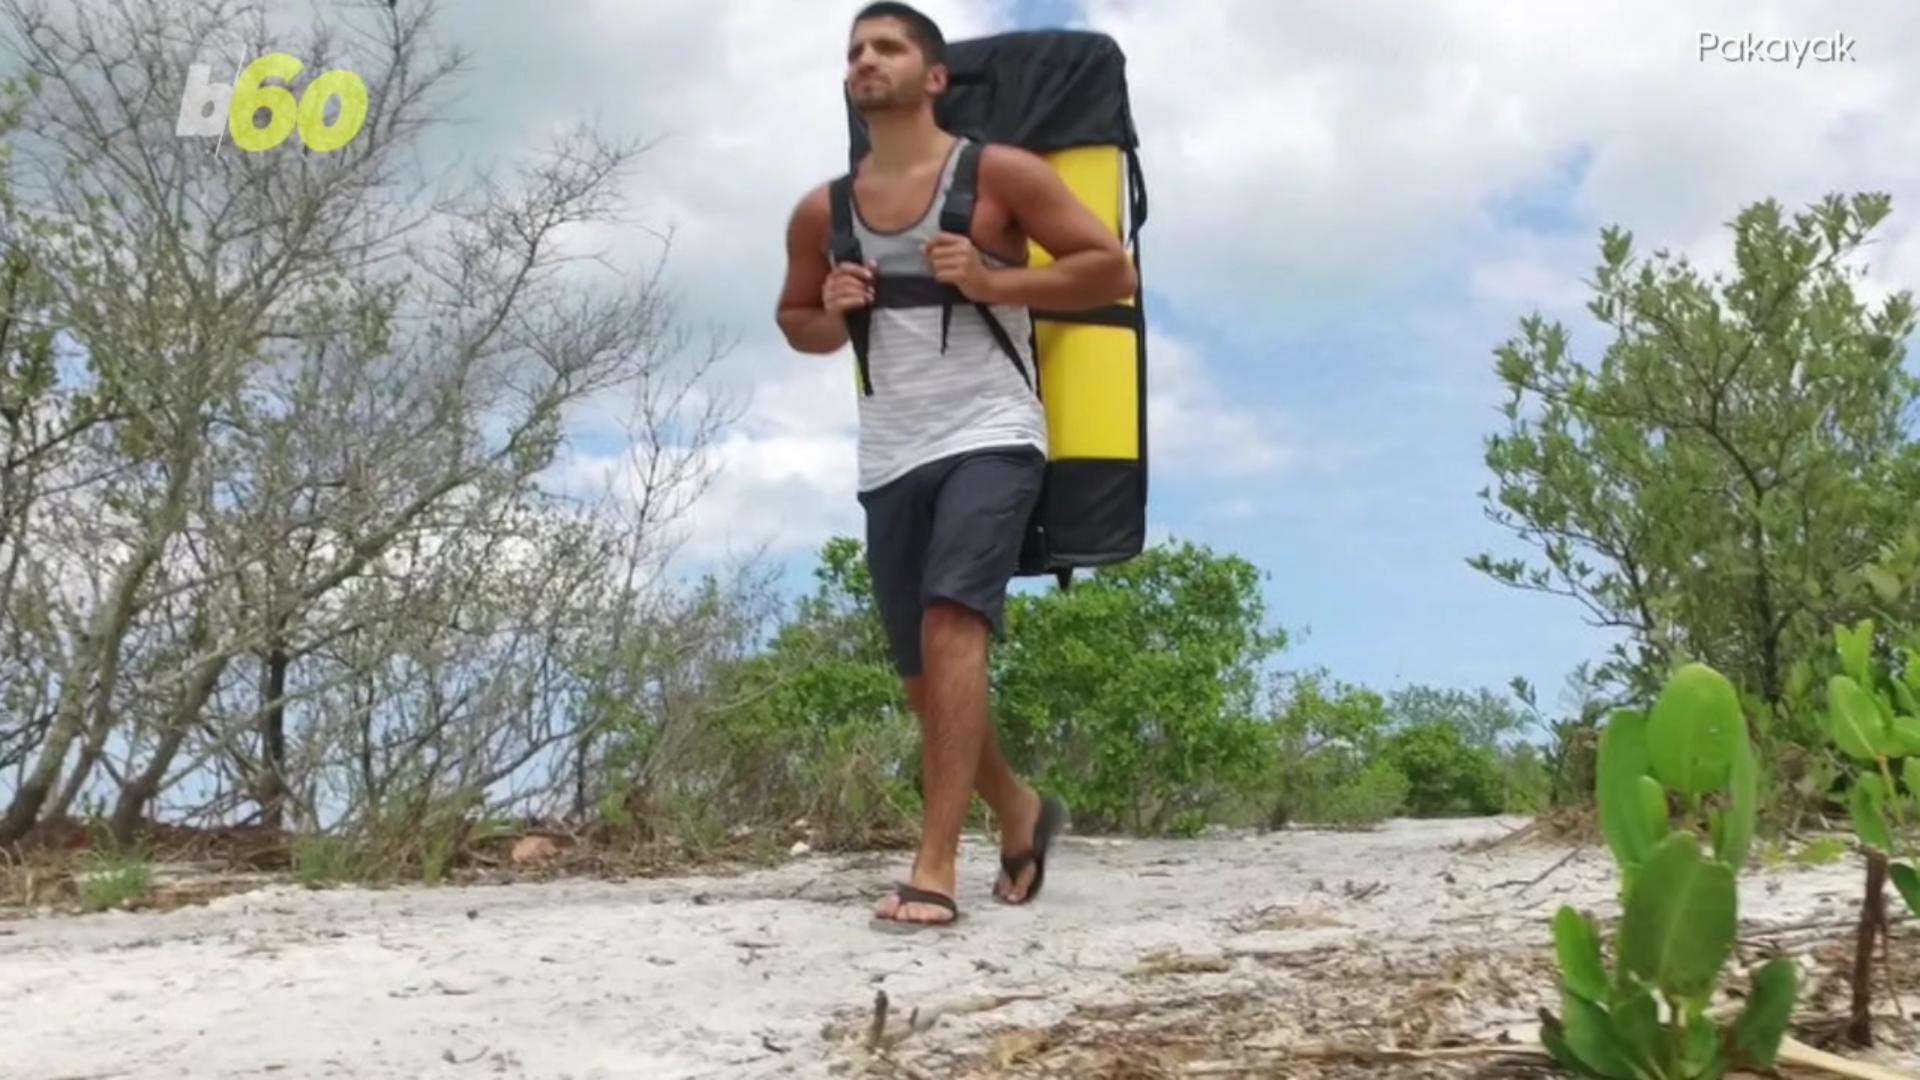 This Kayak Fits Into a Backpack So You Can Take It Anywhere